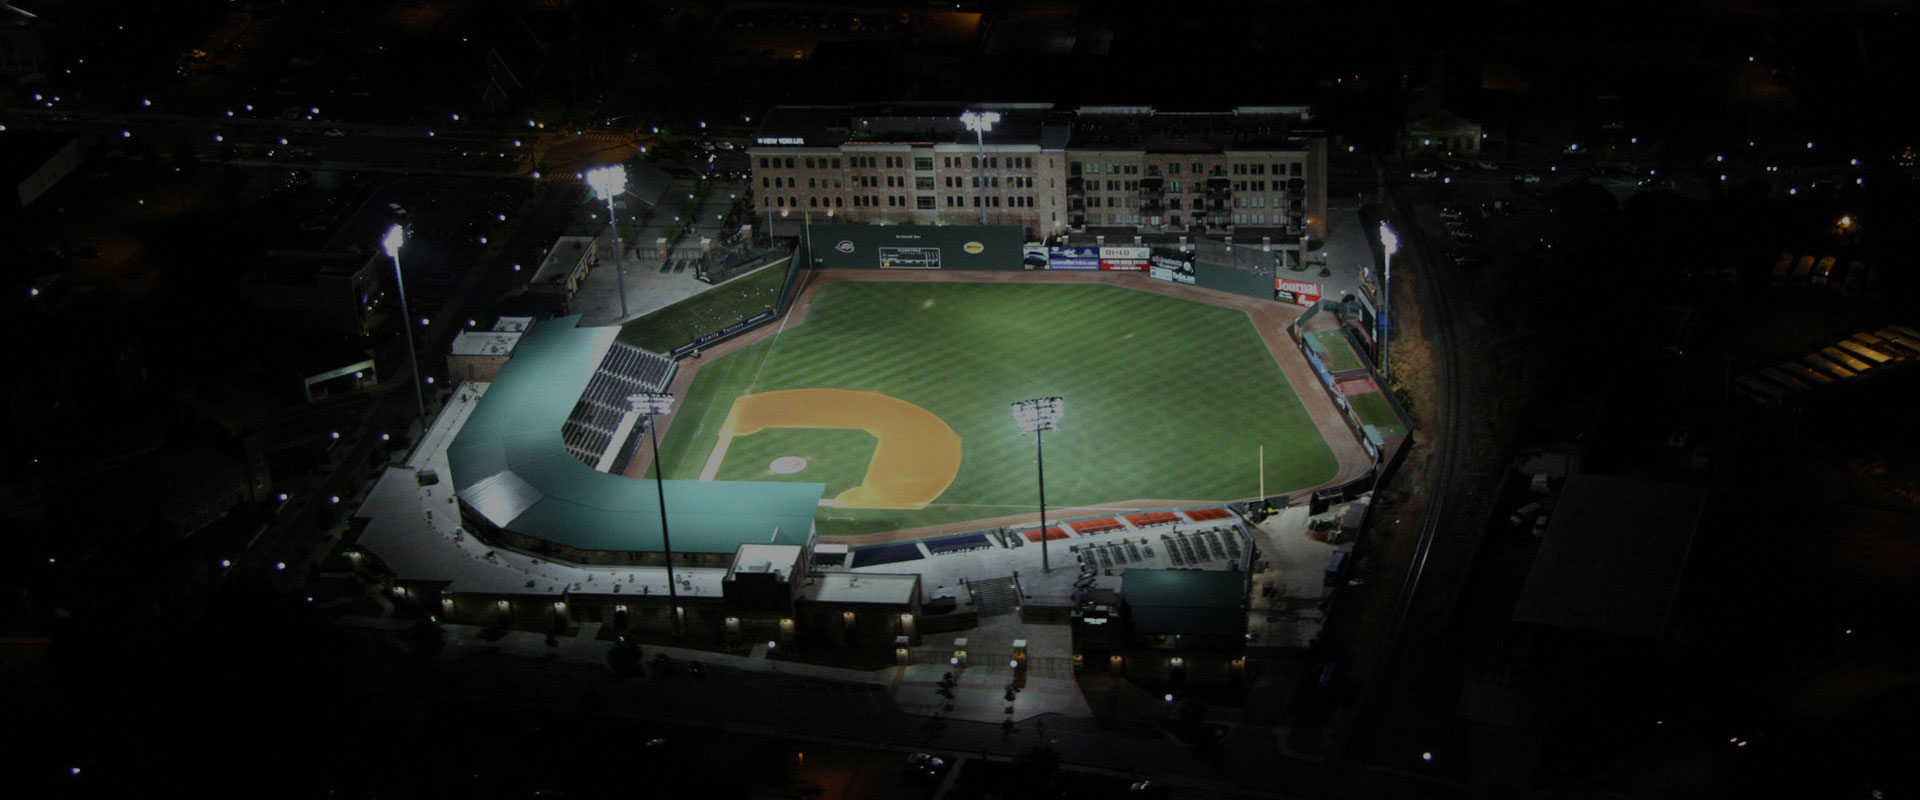 baseball stadium in greenville designed by bluewater